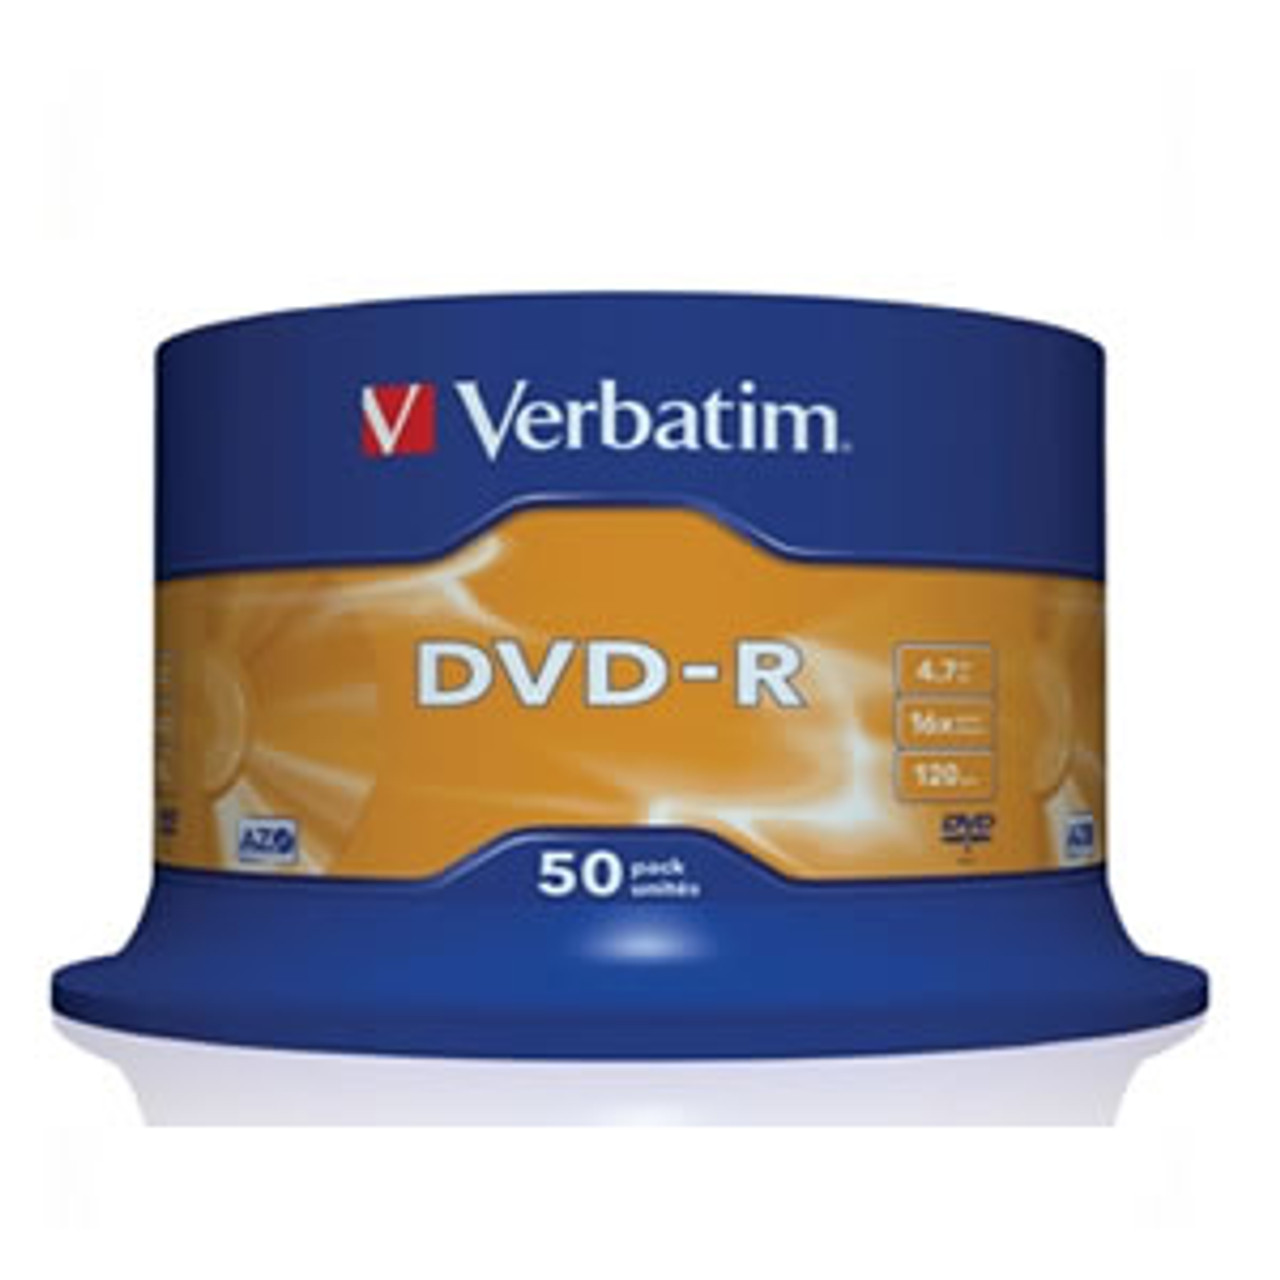 Product image for Verbatim DVD-R 16x White Printable 50pcs   CX Computer Superstore